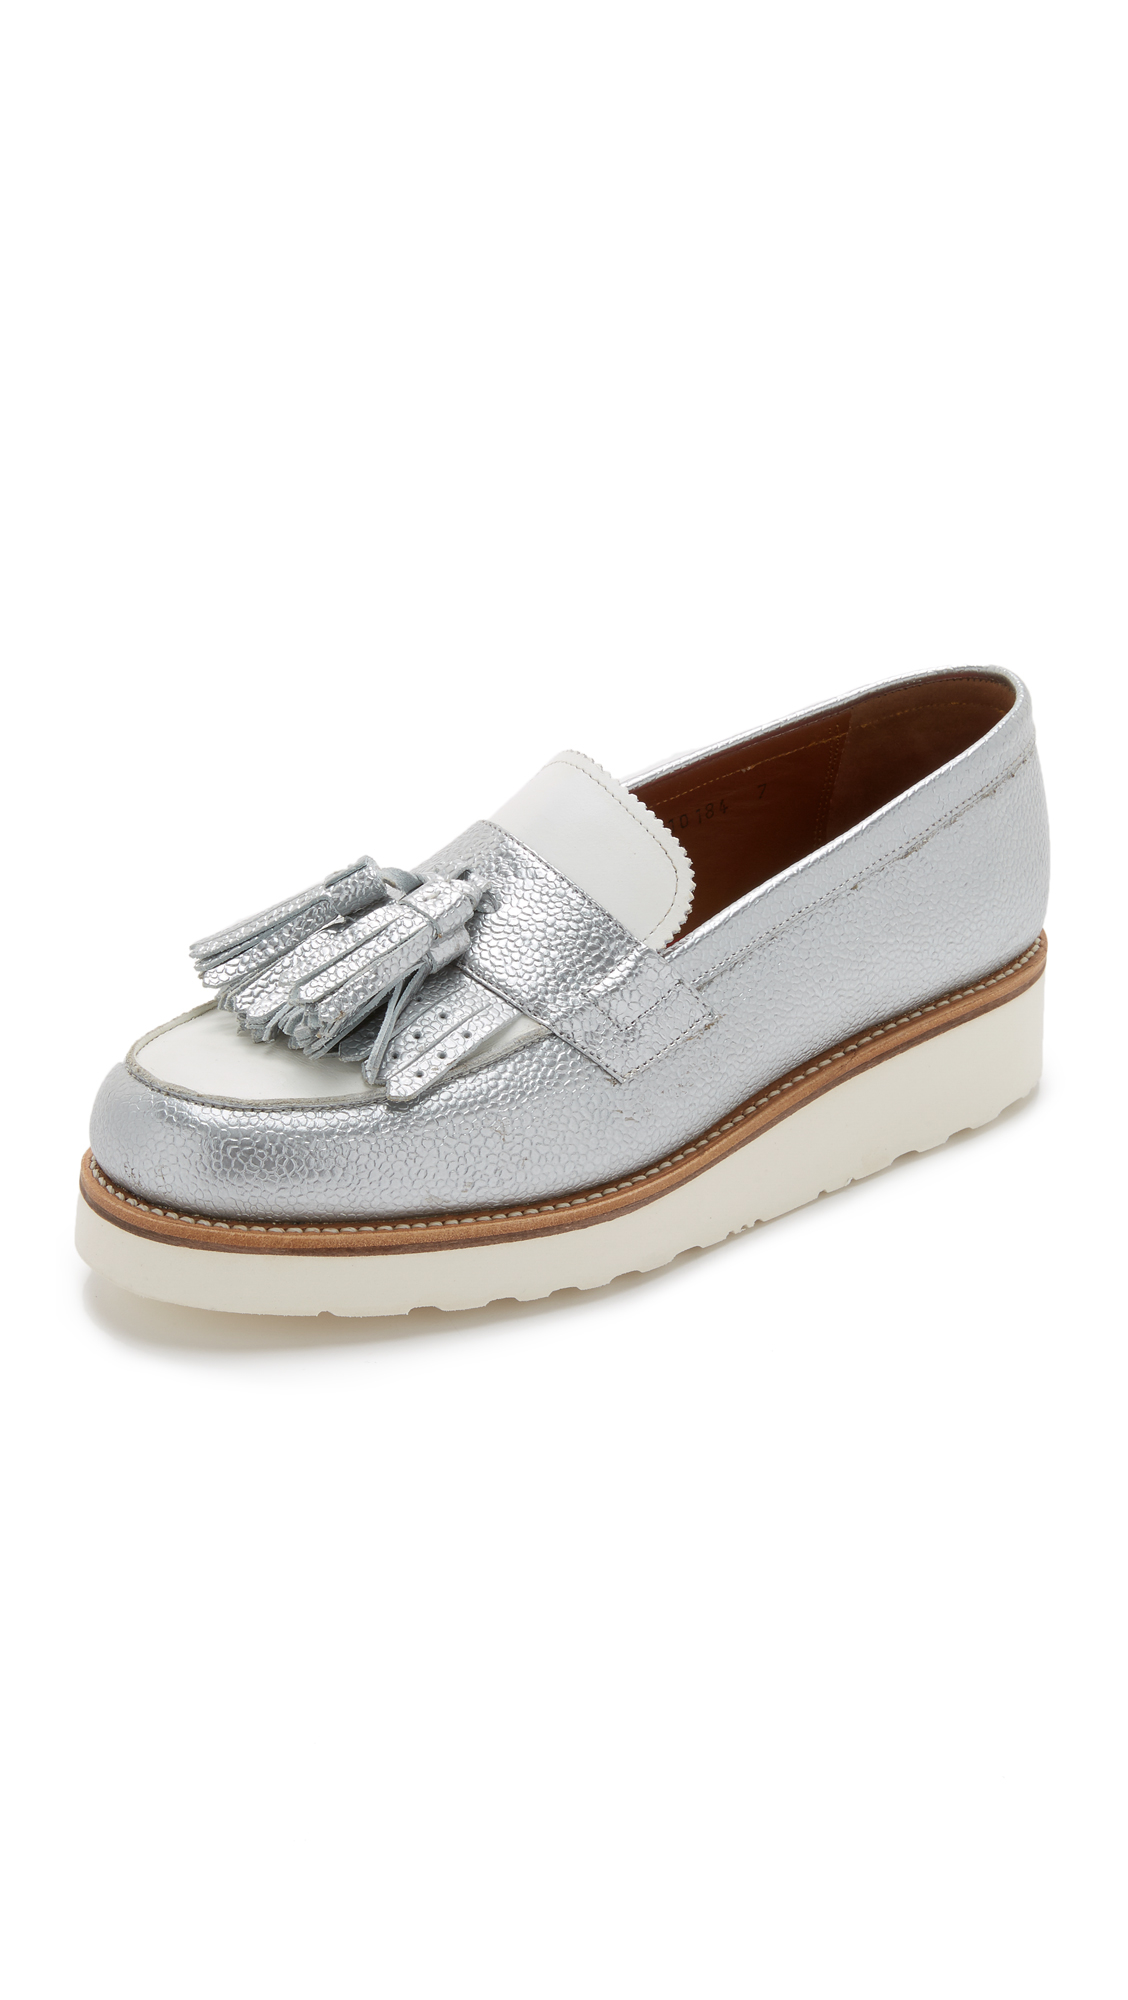 976a130b23c Foot The Coacher Clara Loafers in White - Lyst